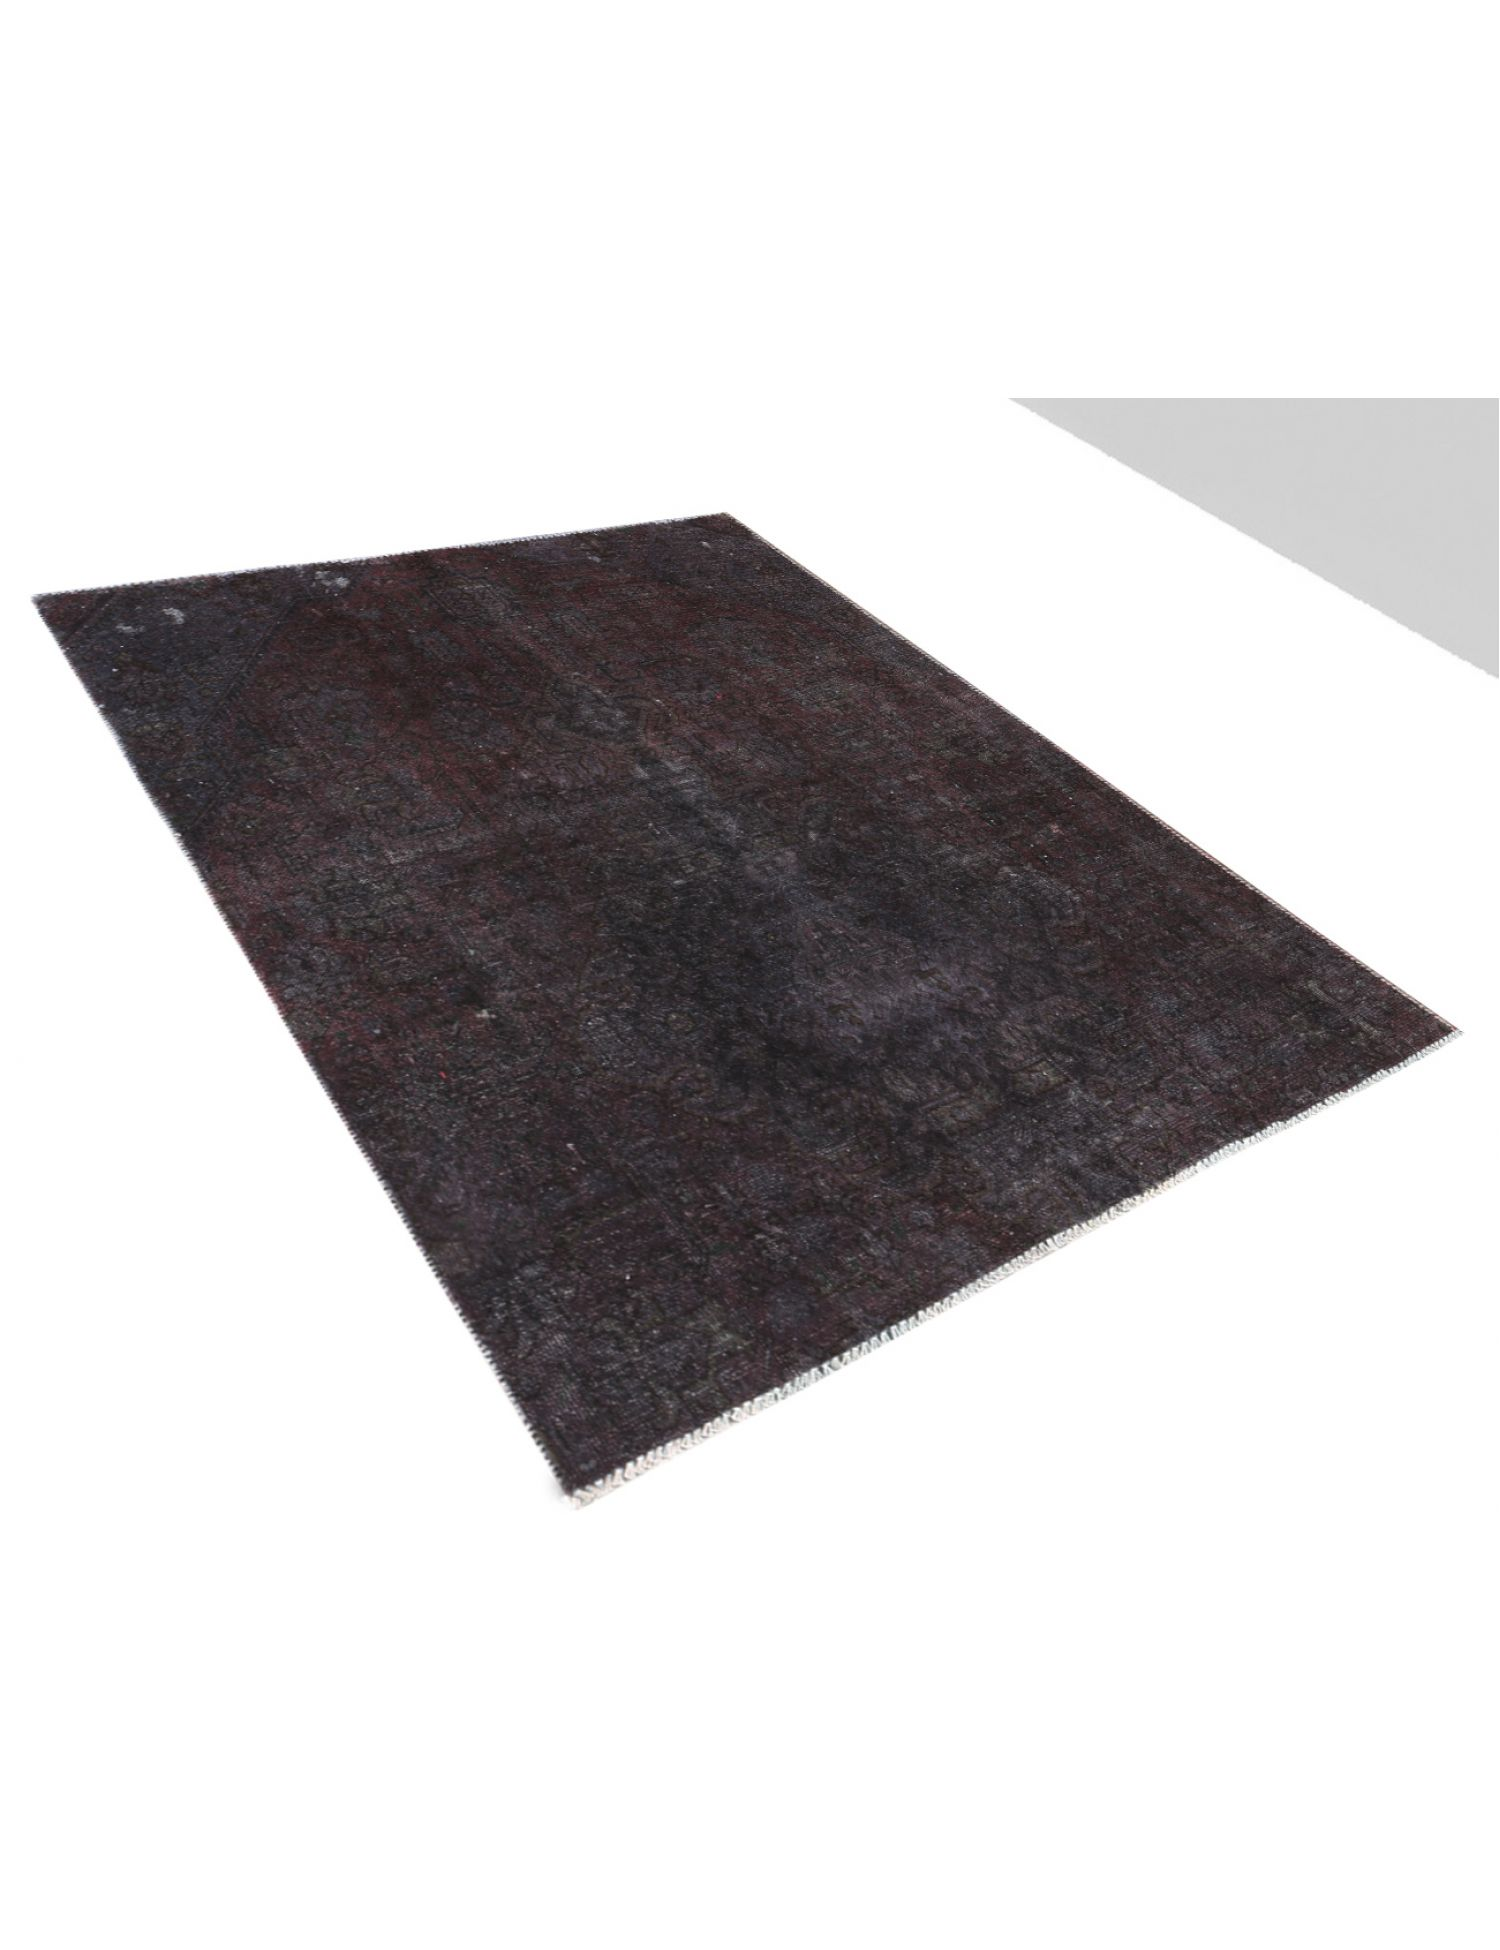 Vintage Carpet  brown <br/>150 x 127 cm